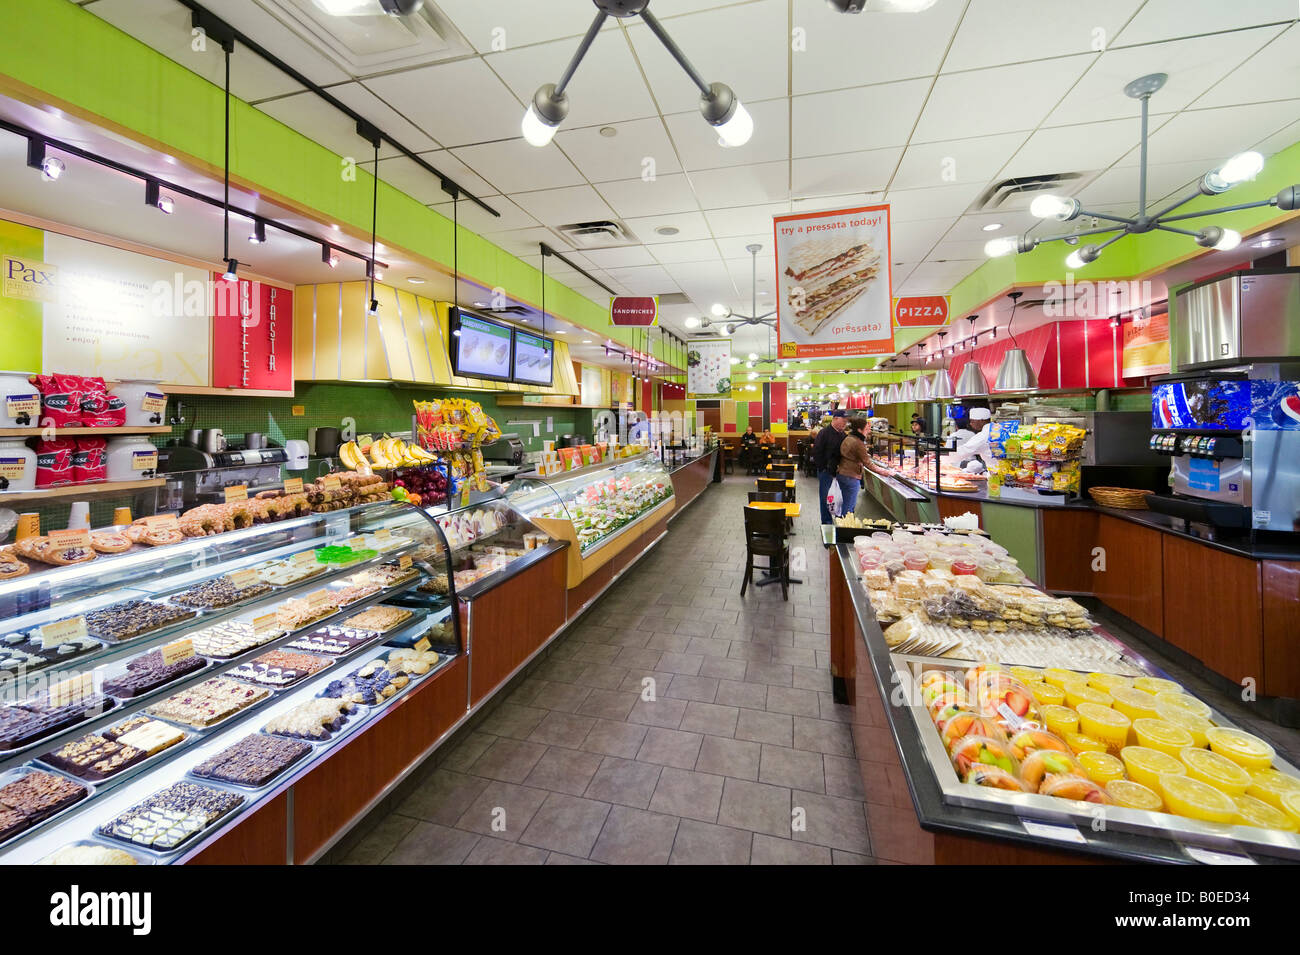 Interior of Deli Restaurant on West 42nd Street at Times Square, Manhattan, New York City - Stock Image